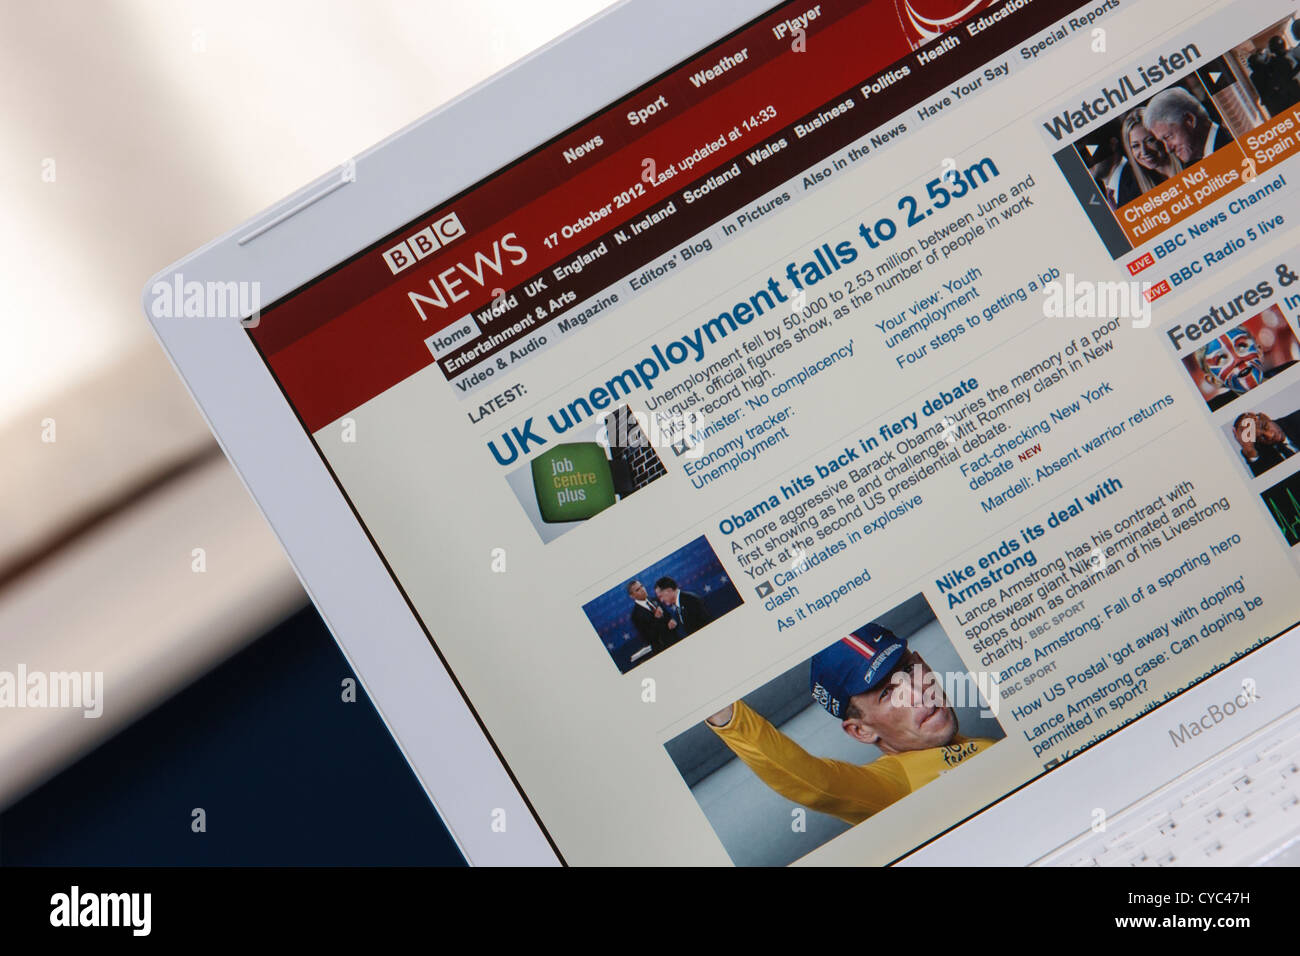 A web page from the BBC news website is photographed being viewed on a laptop computer screen. - Stock Image